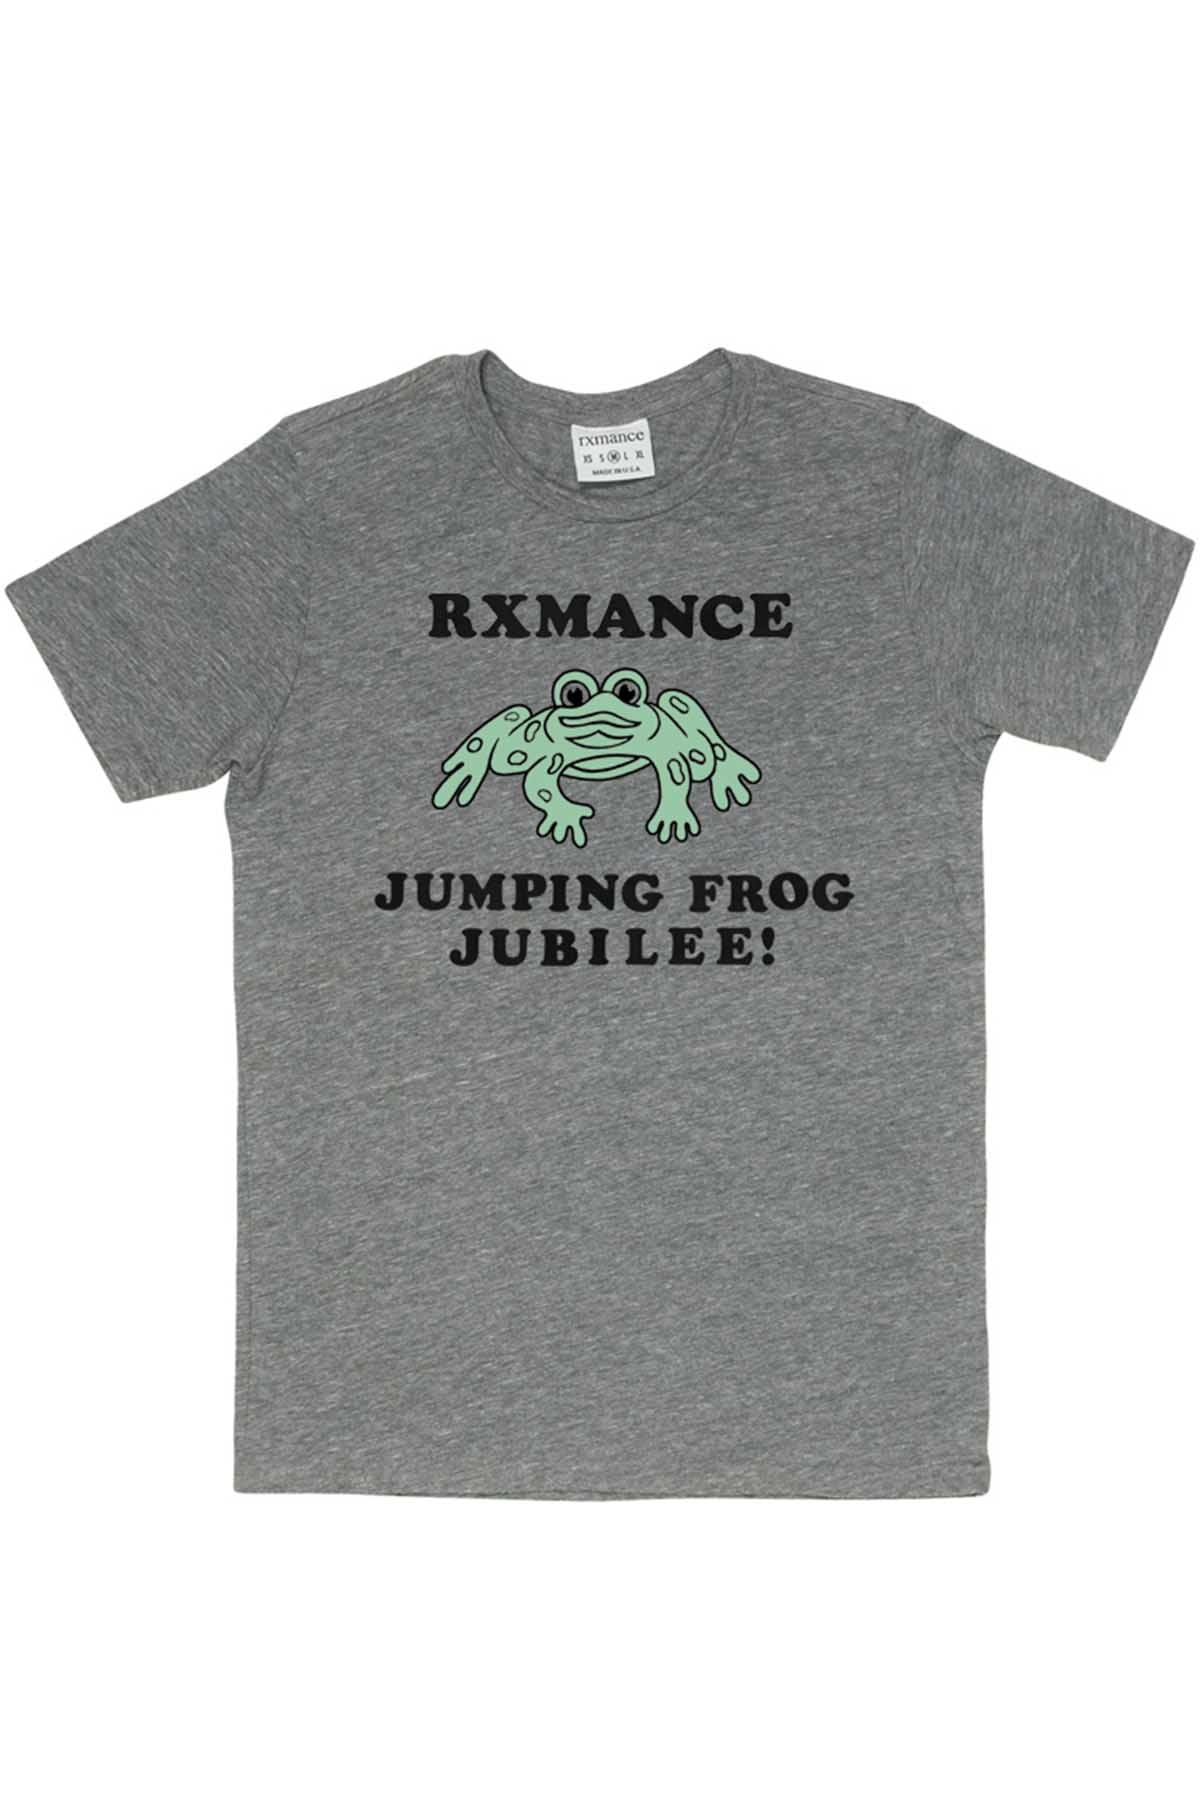 Rxmance Unisex Heather Grey 'Jumping Frog' Tee